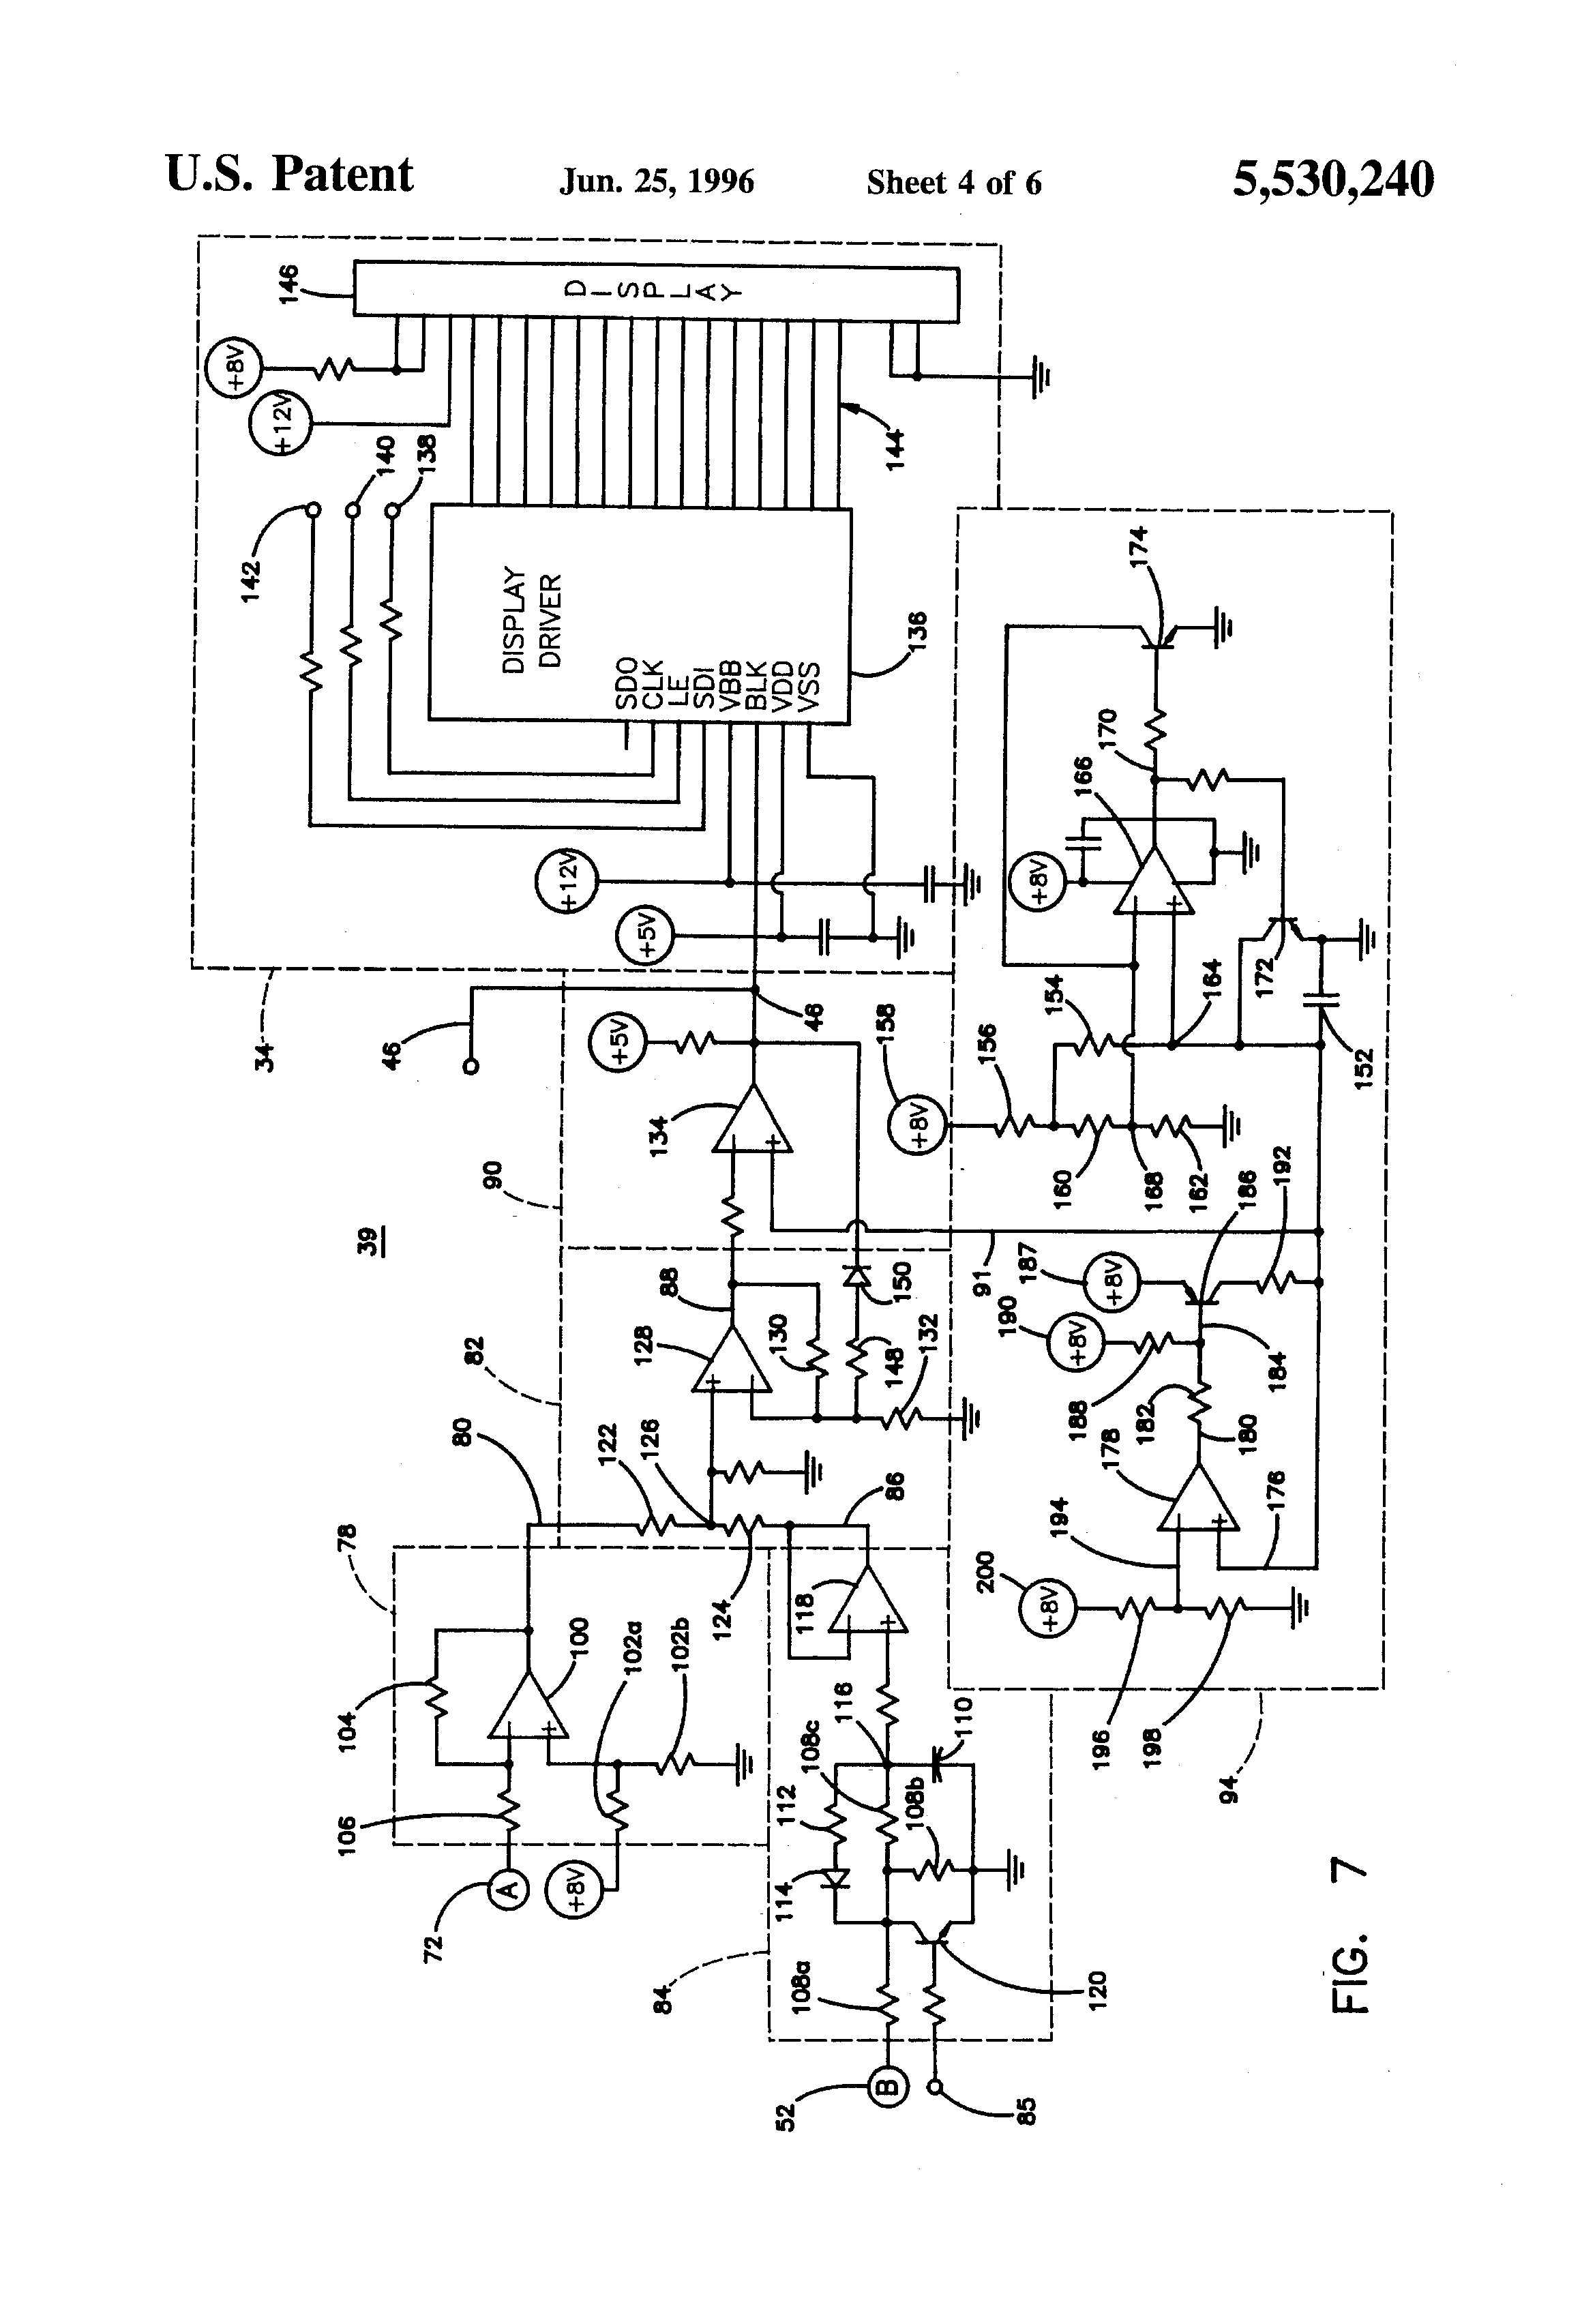 Velvac 2030 Wiring Diagram For A Mirror Diagrams Part Numbers Patent Us5530240 Display Automatic Rearview 92 Xj Power Camera